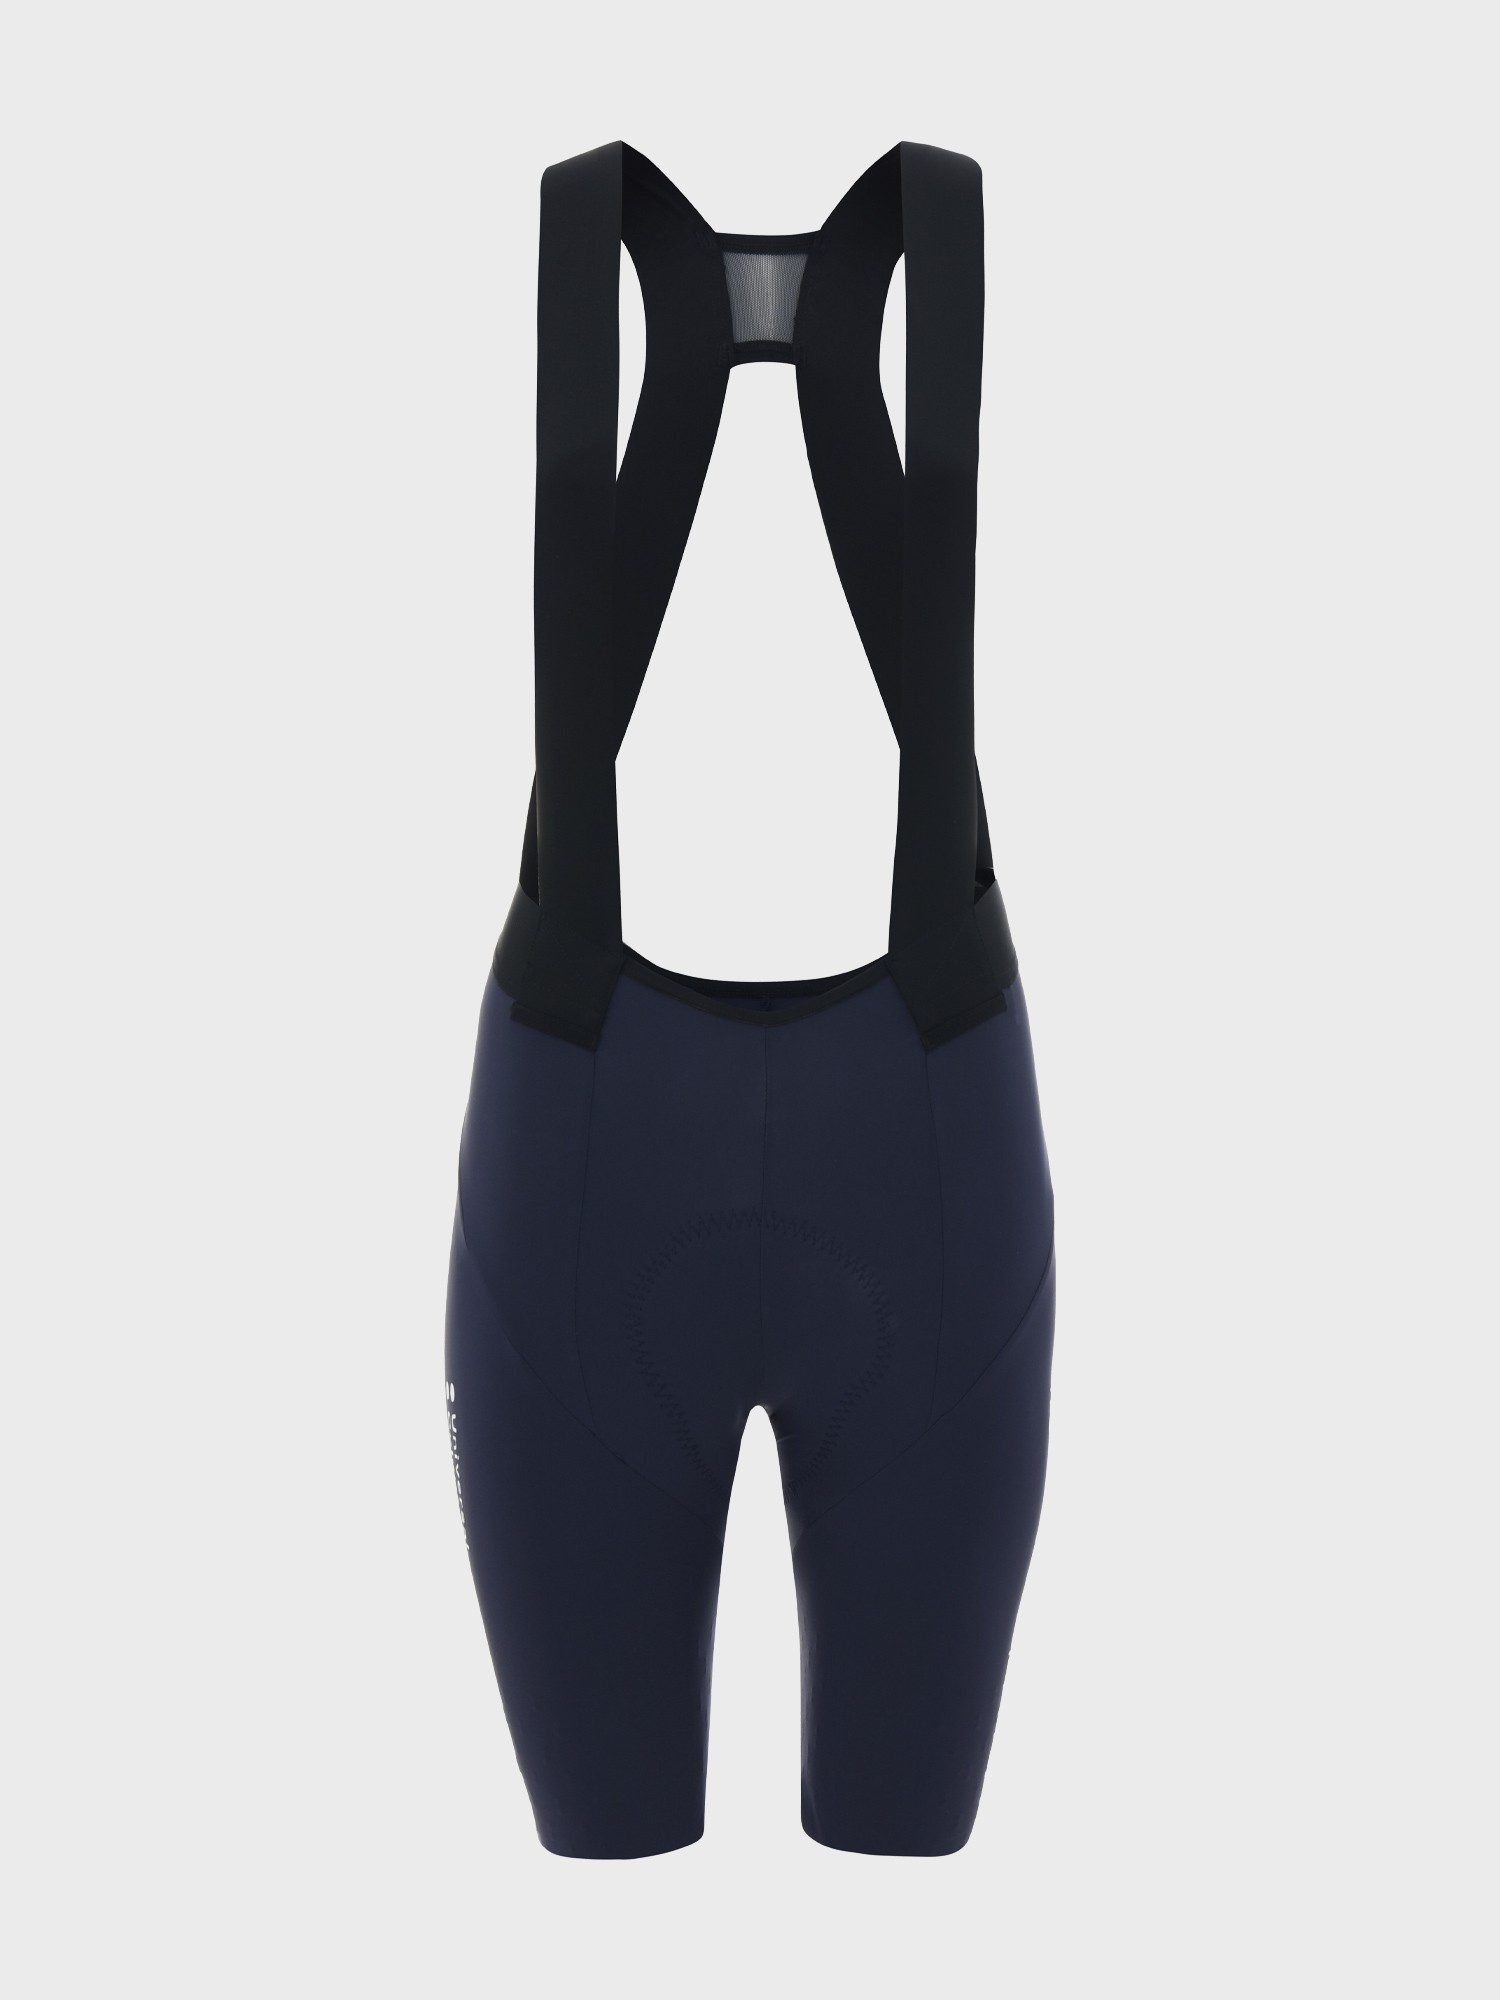 Chroma Women's Bib Short